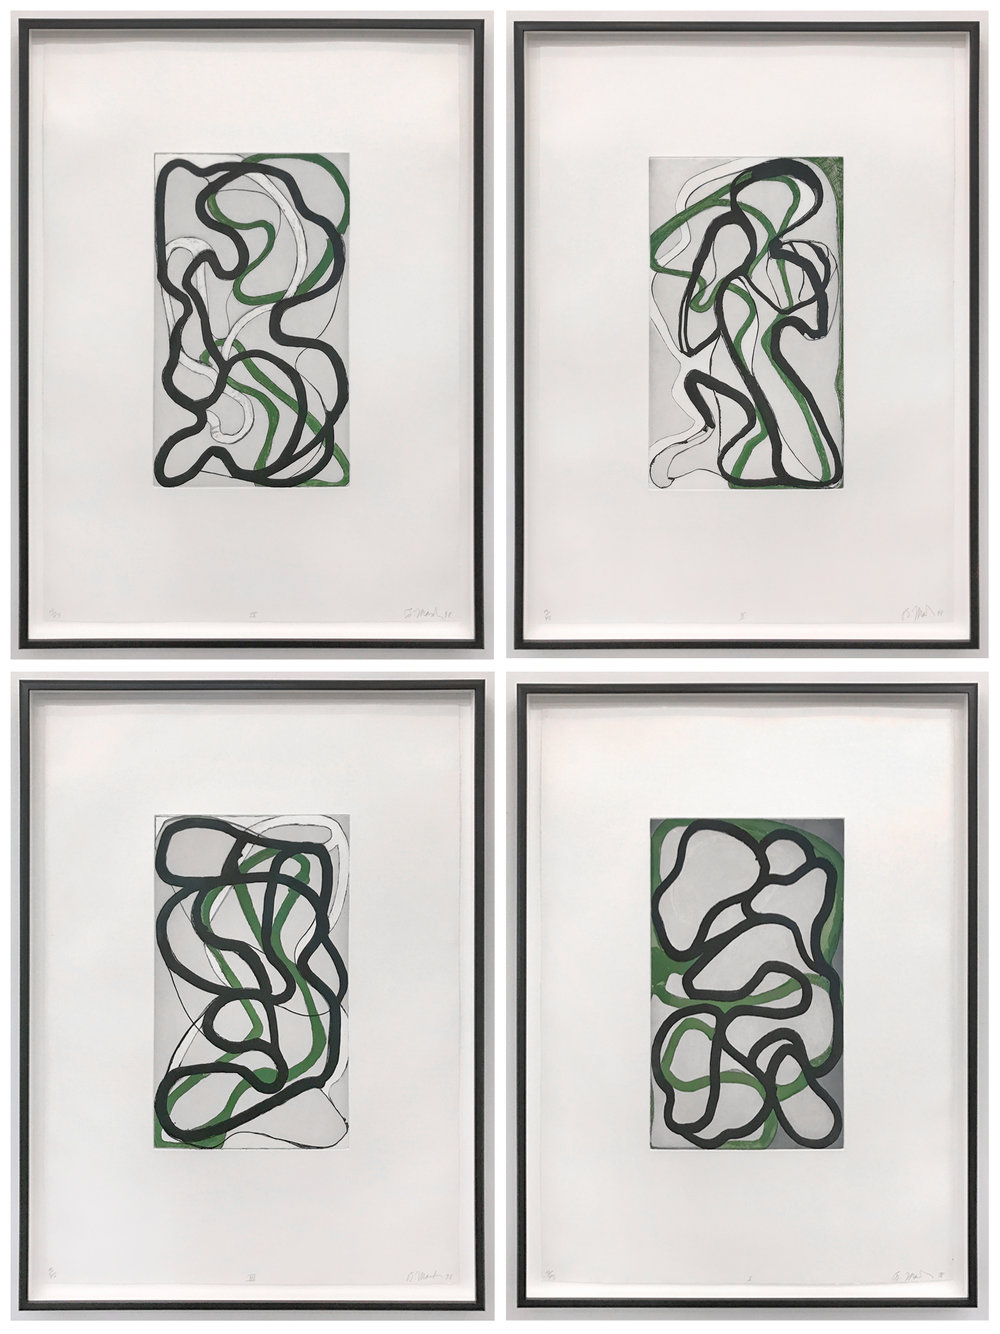 Brice Marden  Suzhou I-IV , 1998 set of 4 etchings with other media on Somerset paper 25 5/8 x 18 3/4 inches each (37.5 x 22.2 cm) Edition of 45